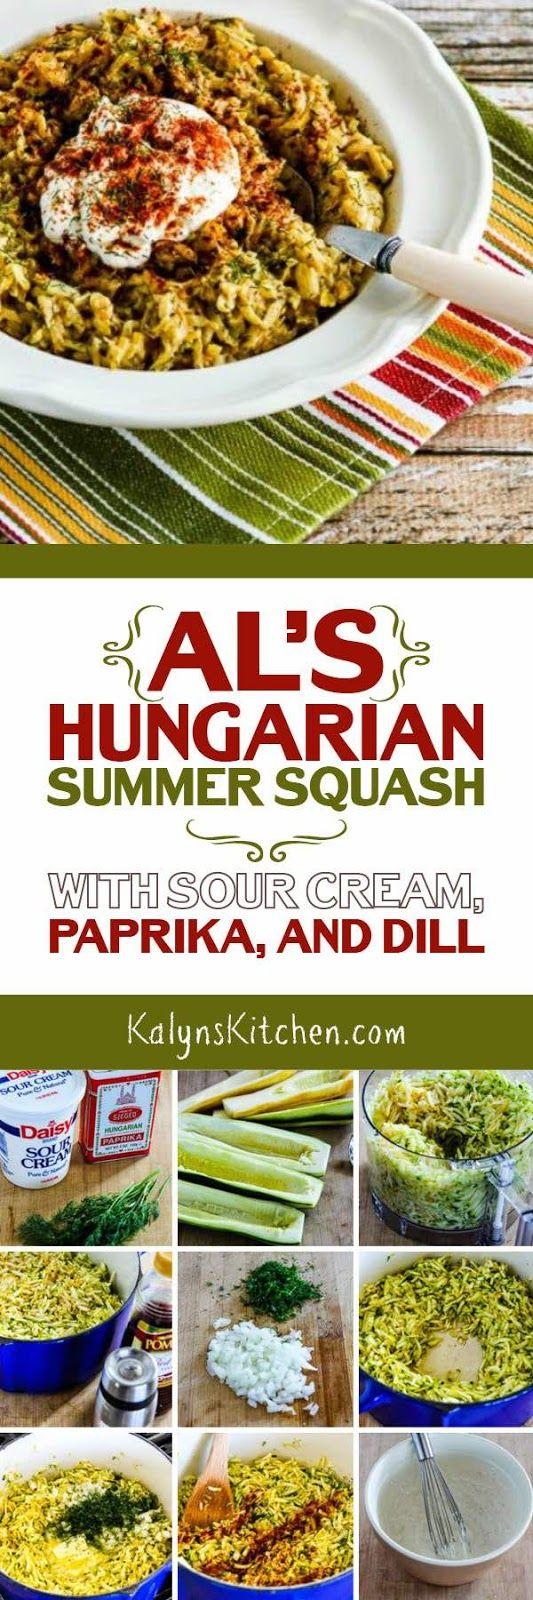 Al's Hungarian Summer Squash with Sour Cream, Paprika, and Dill found on KalynsKitchen.com